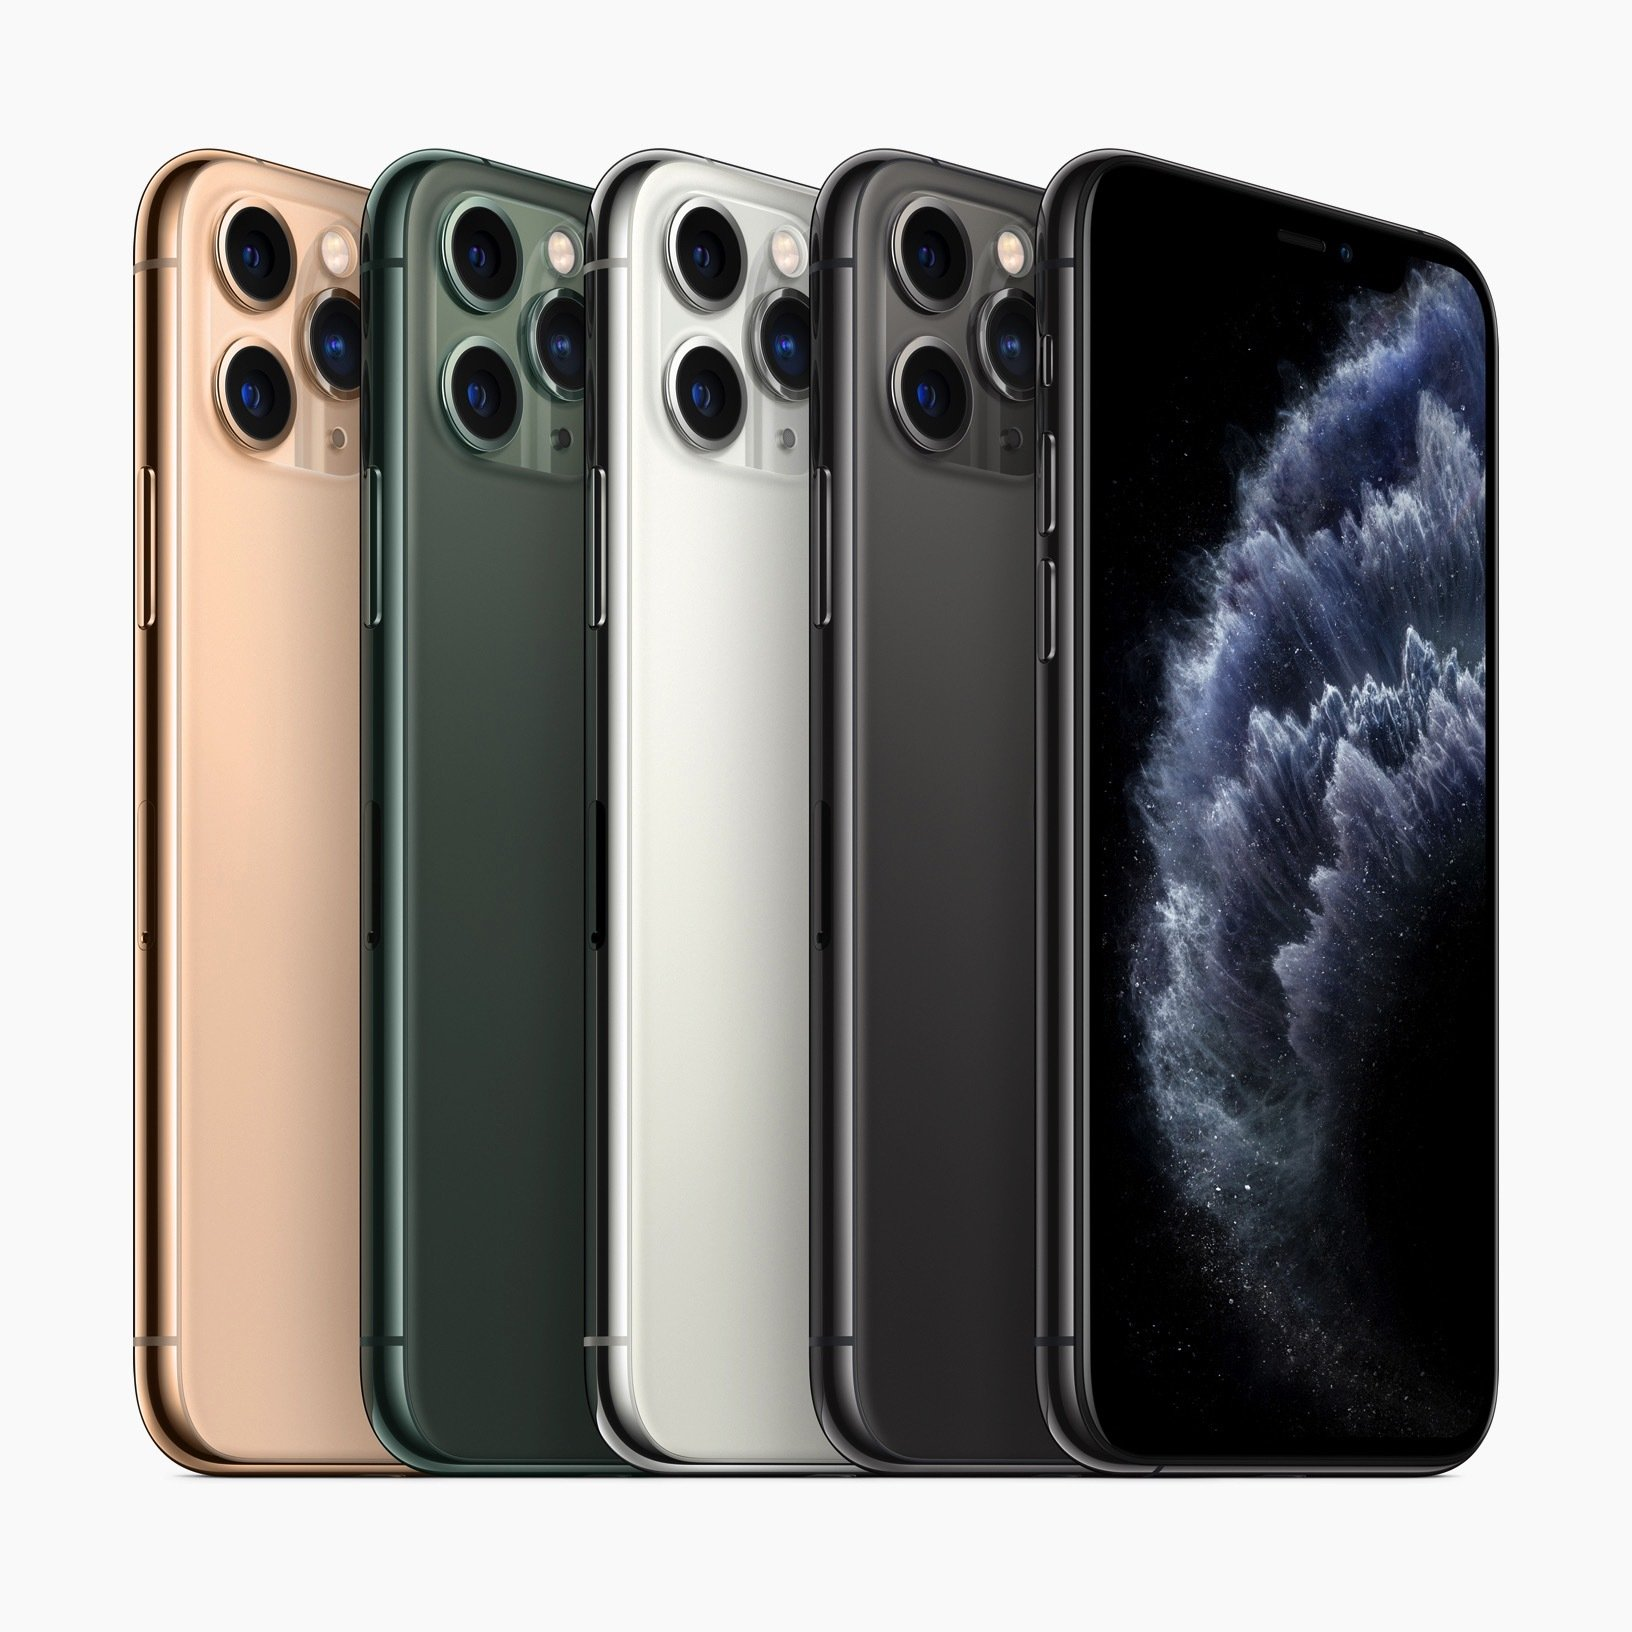 Apple increases iPhone 11 Pro prices in India after rise in Custom Duty